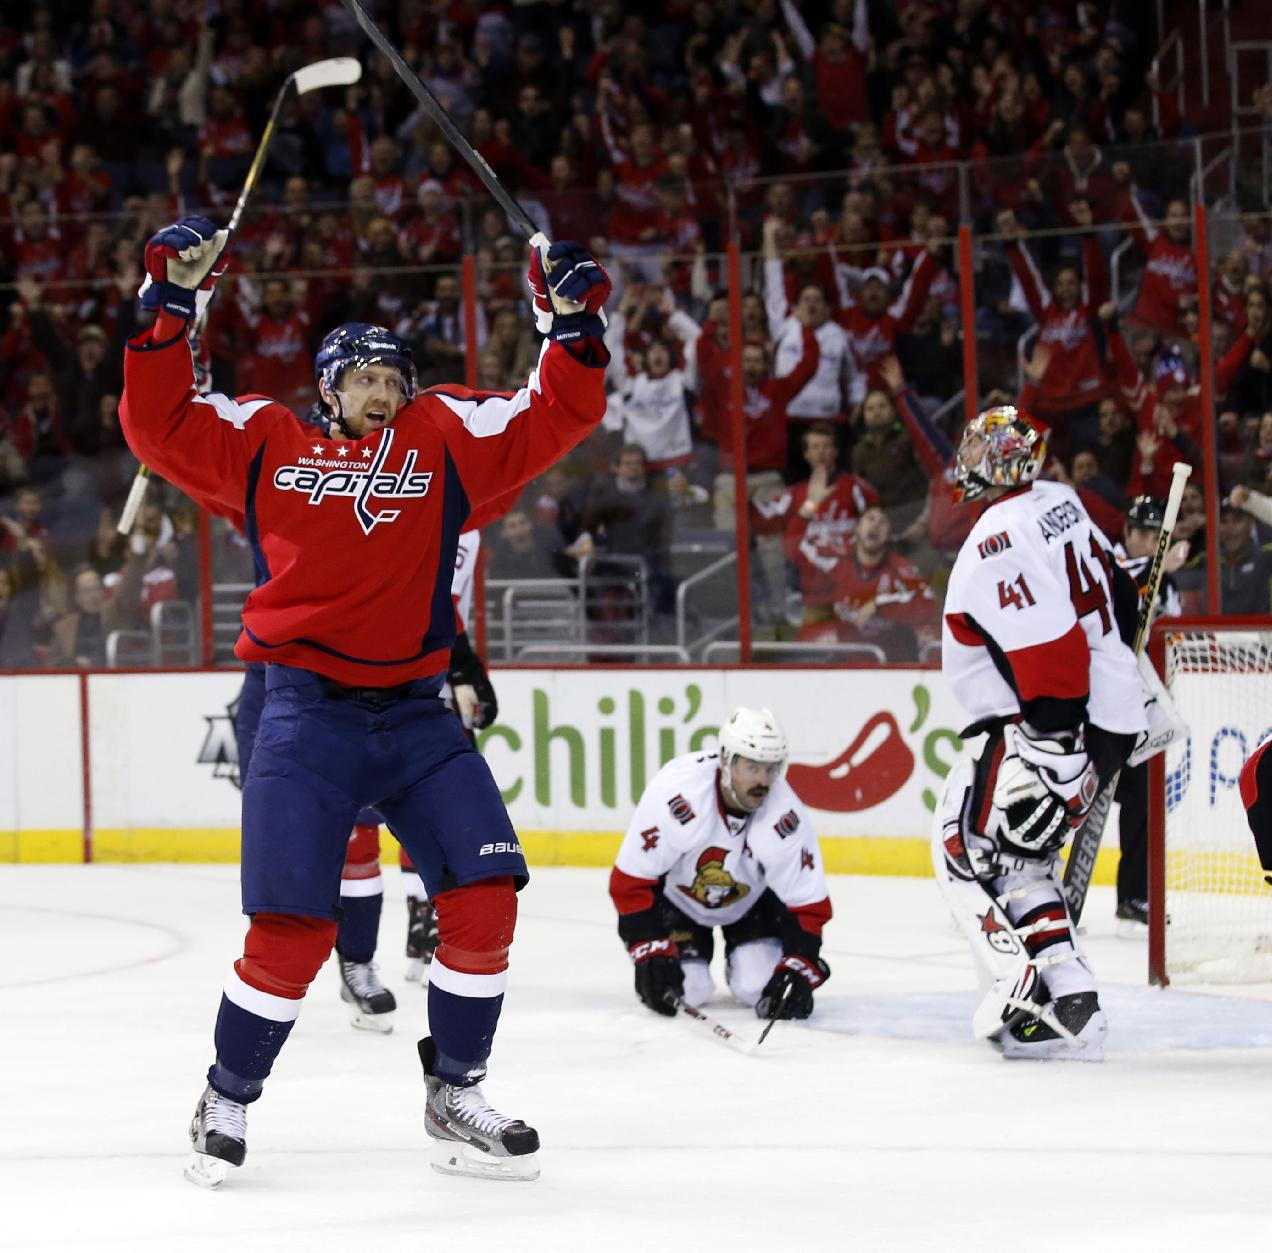 Washington Capitals right wing Eric Fehr (16) celebrates his goal past Ottawa Senators goalie Craig Anderson (41) in the first period of an NHL hockey game, Wednesday, Nov. 27, 2013, in Washington